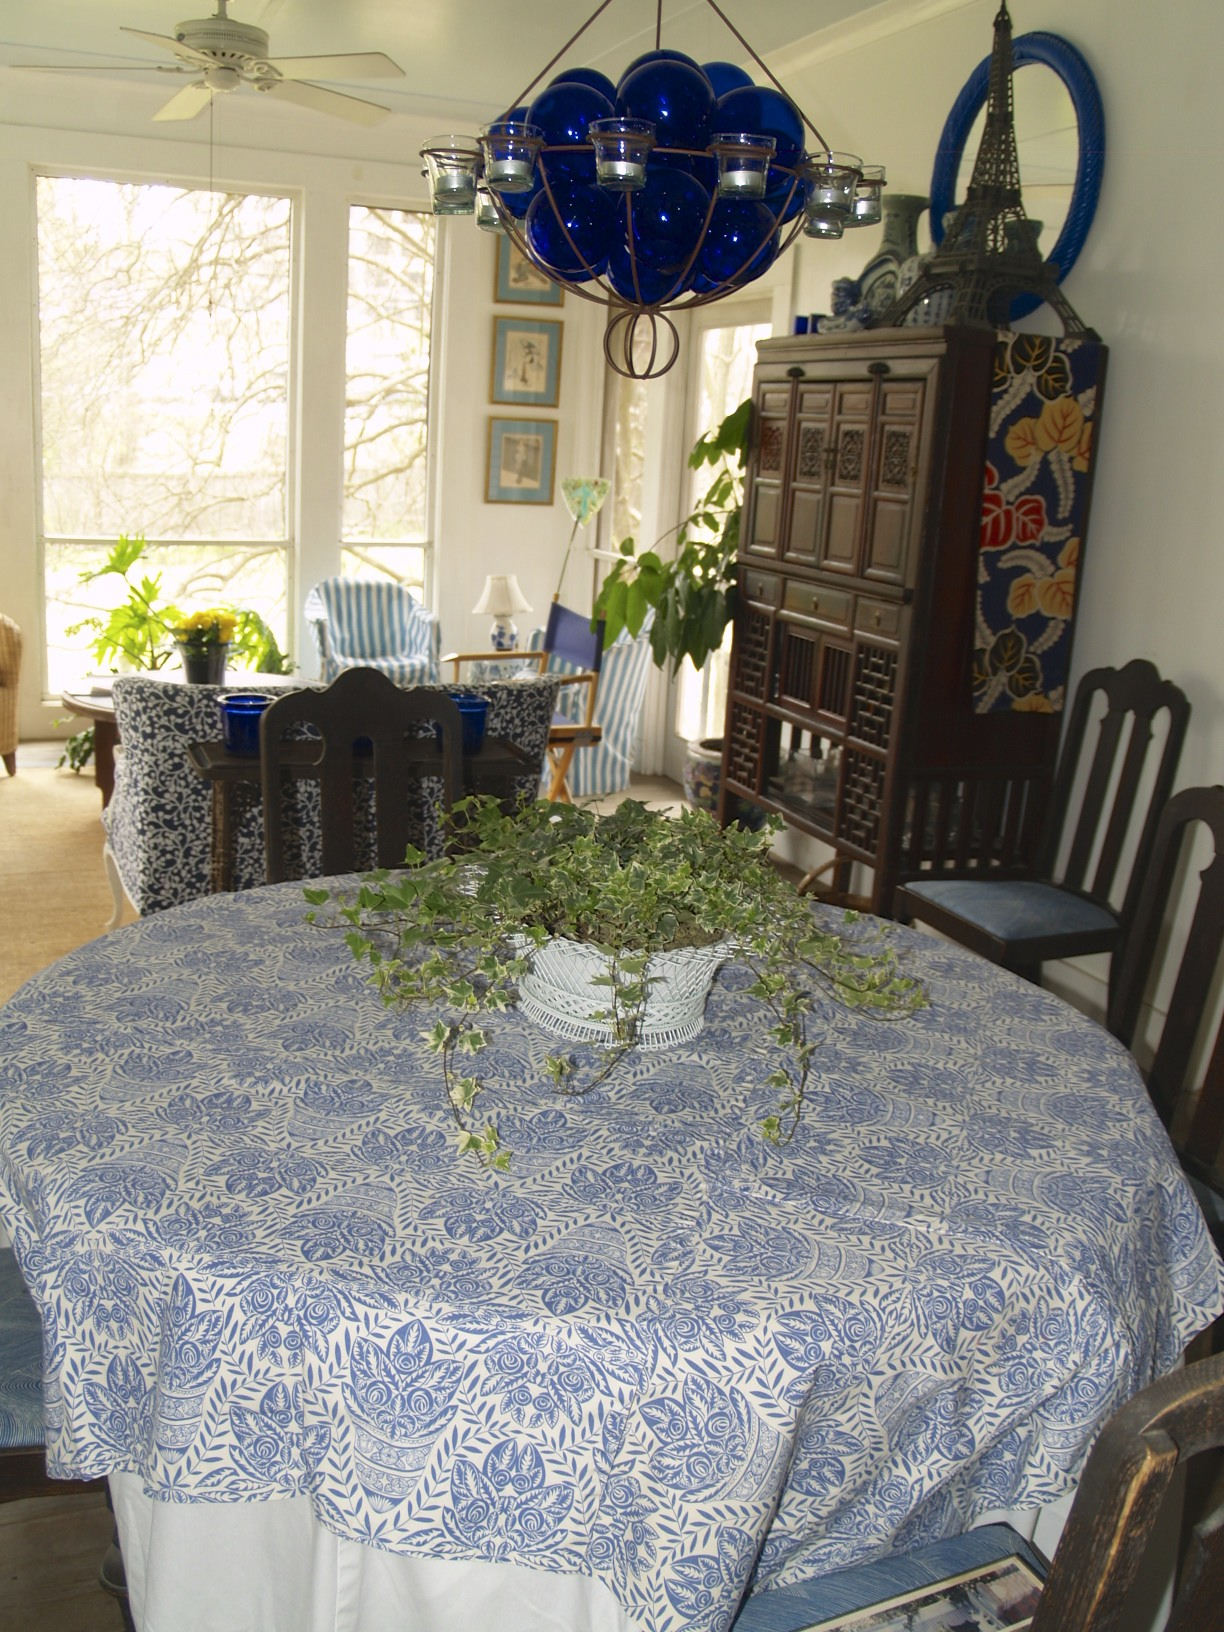 Raoul Dufy fabric tablecloth